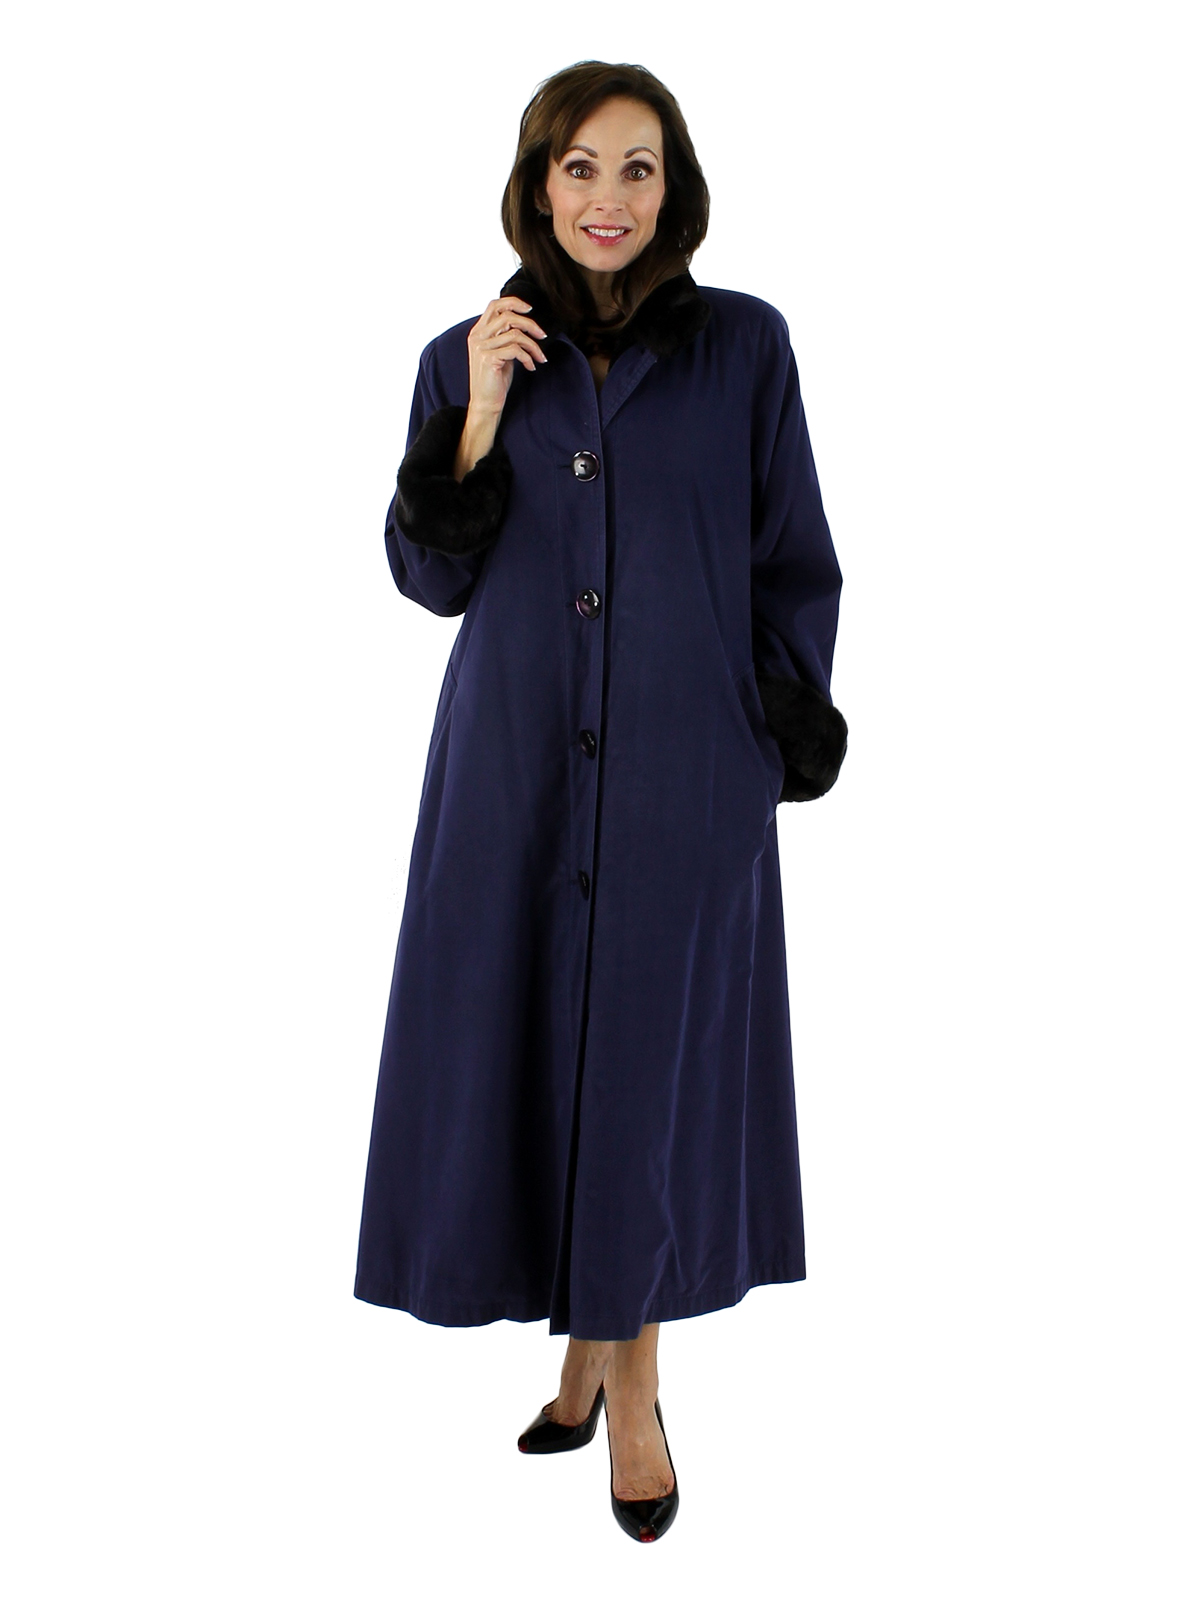 Woman's Deep Periwinkle Full Length Raincoat with Nutria Lining